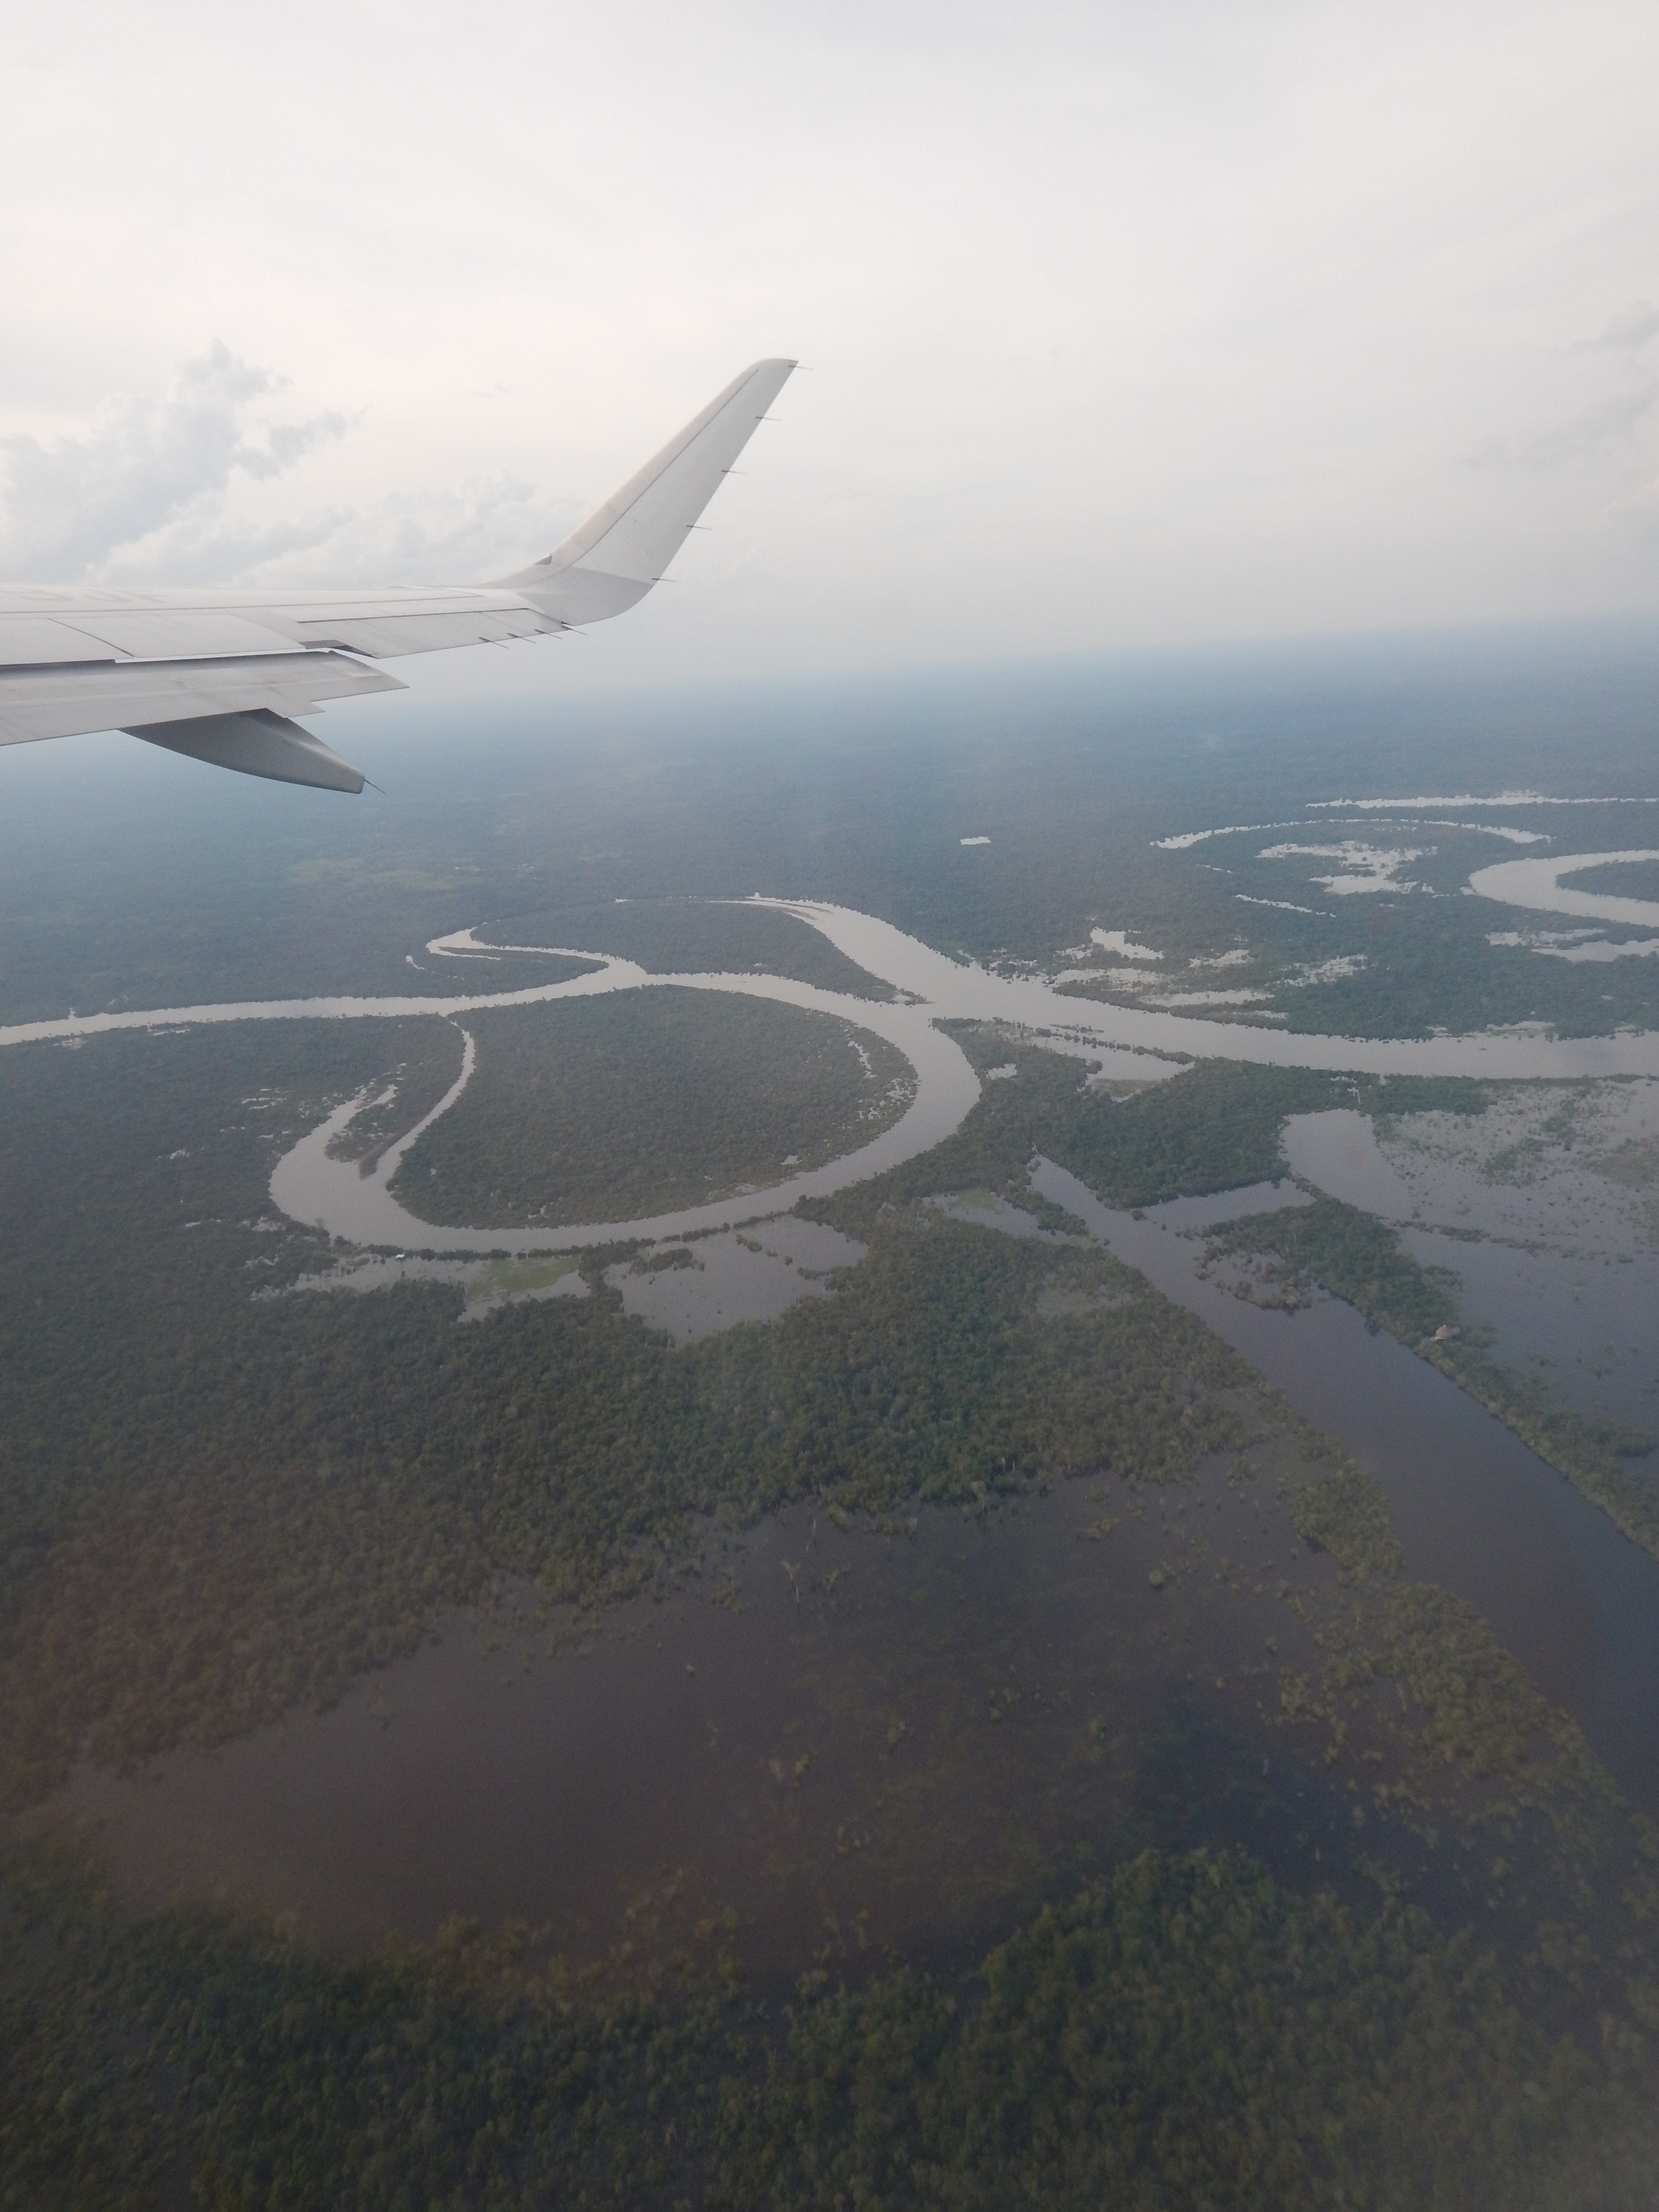 The Amazon Rainforest as viewed from the airplane